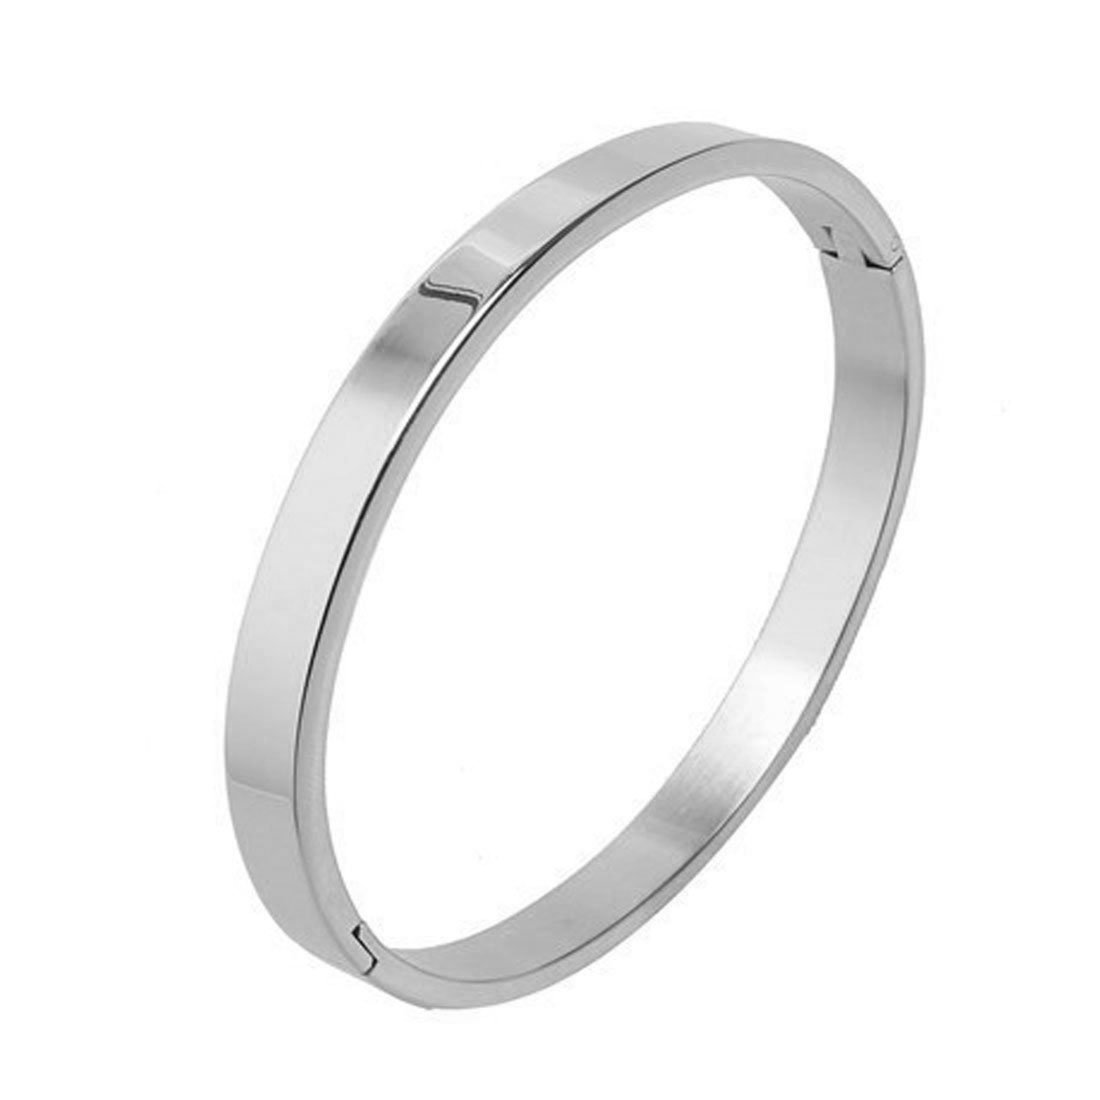 7th Element Polished Stainless Steel Bracelet Classical Band Bangle for Womens (Silver,6mm 6.3inch)